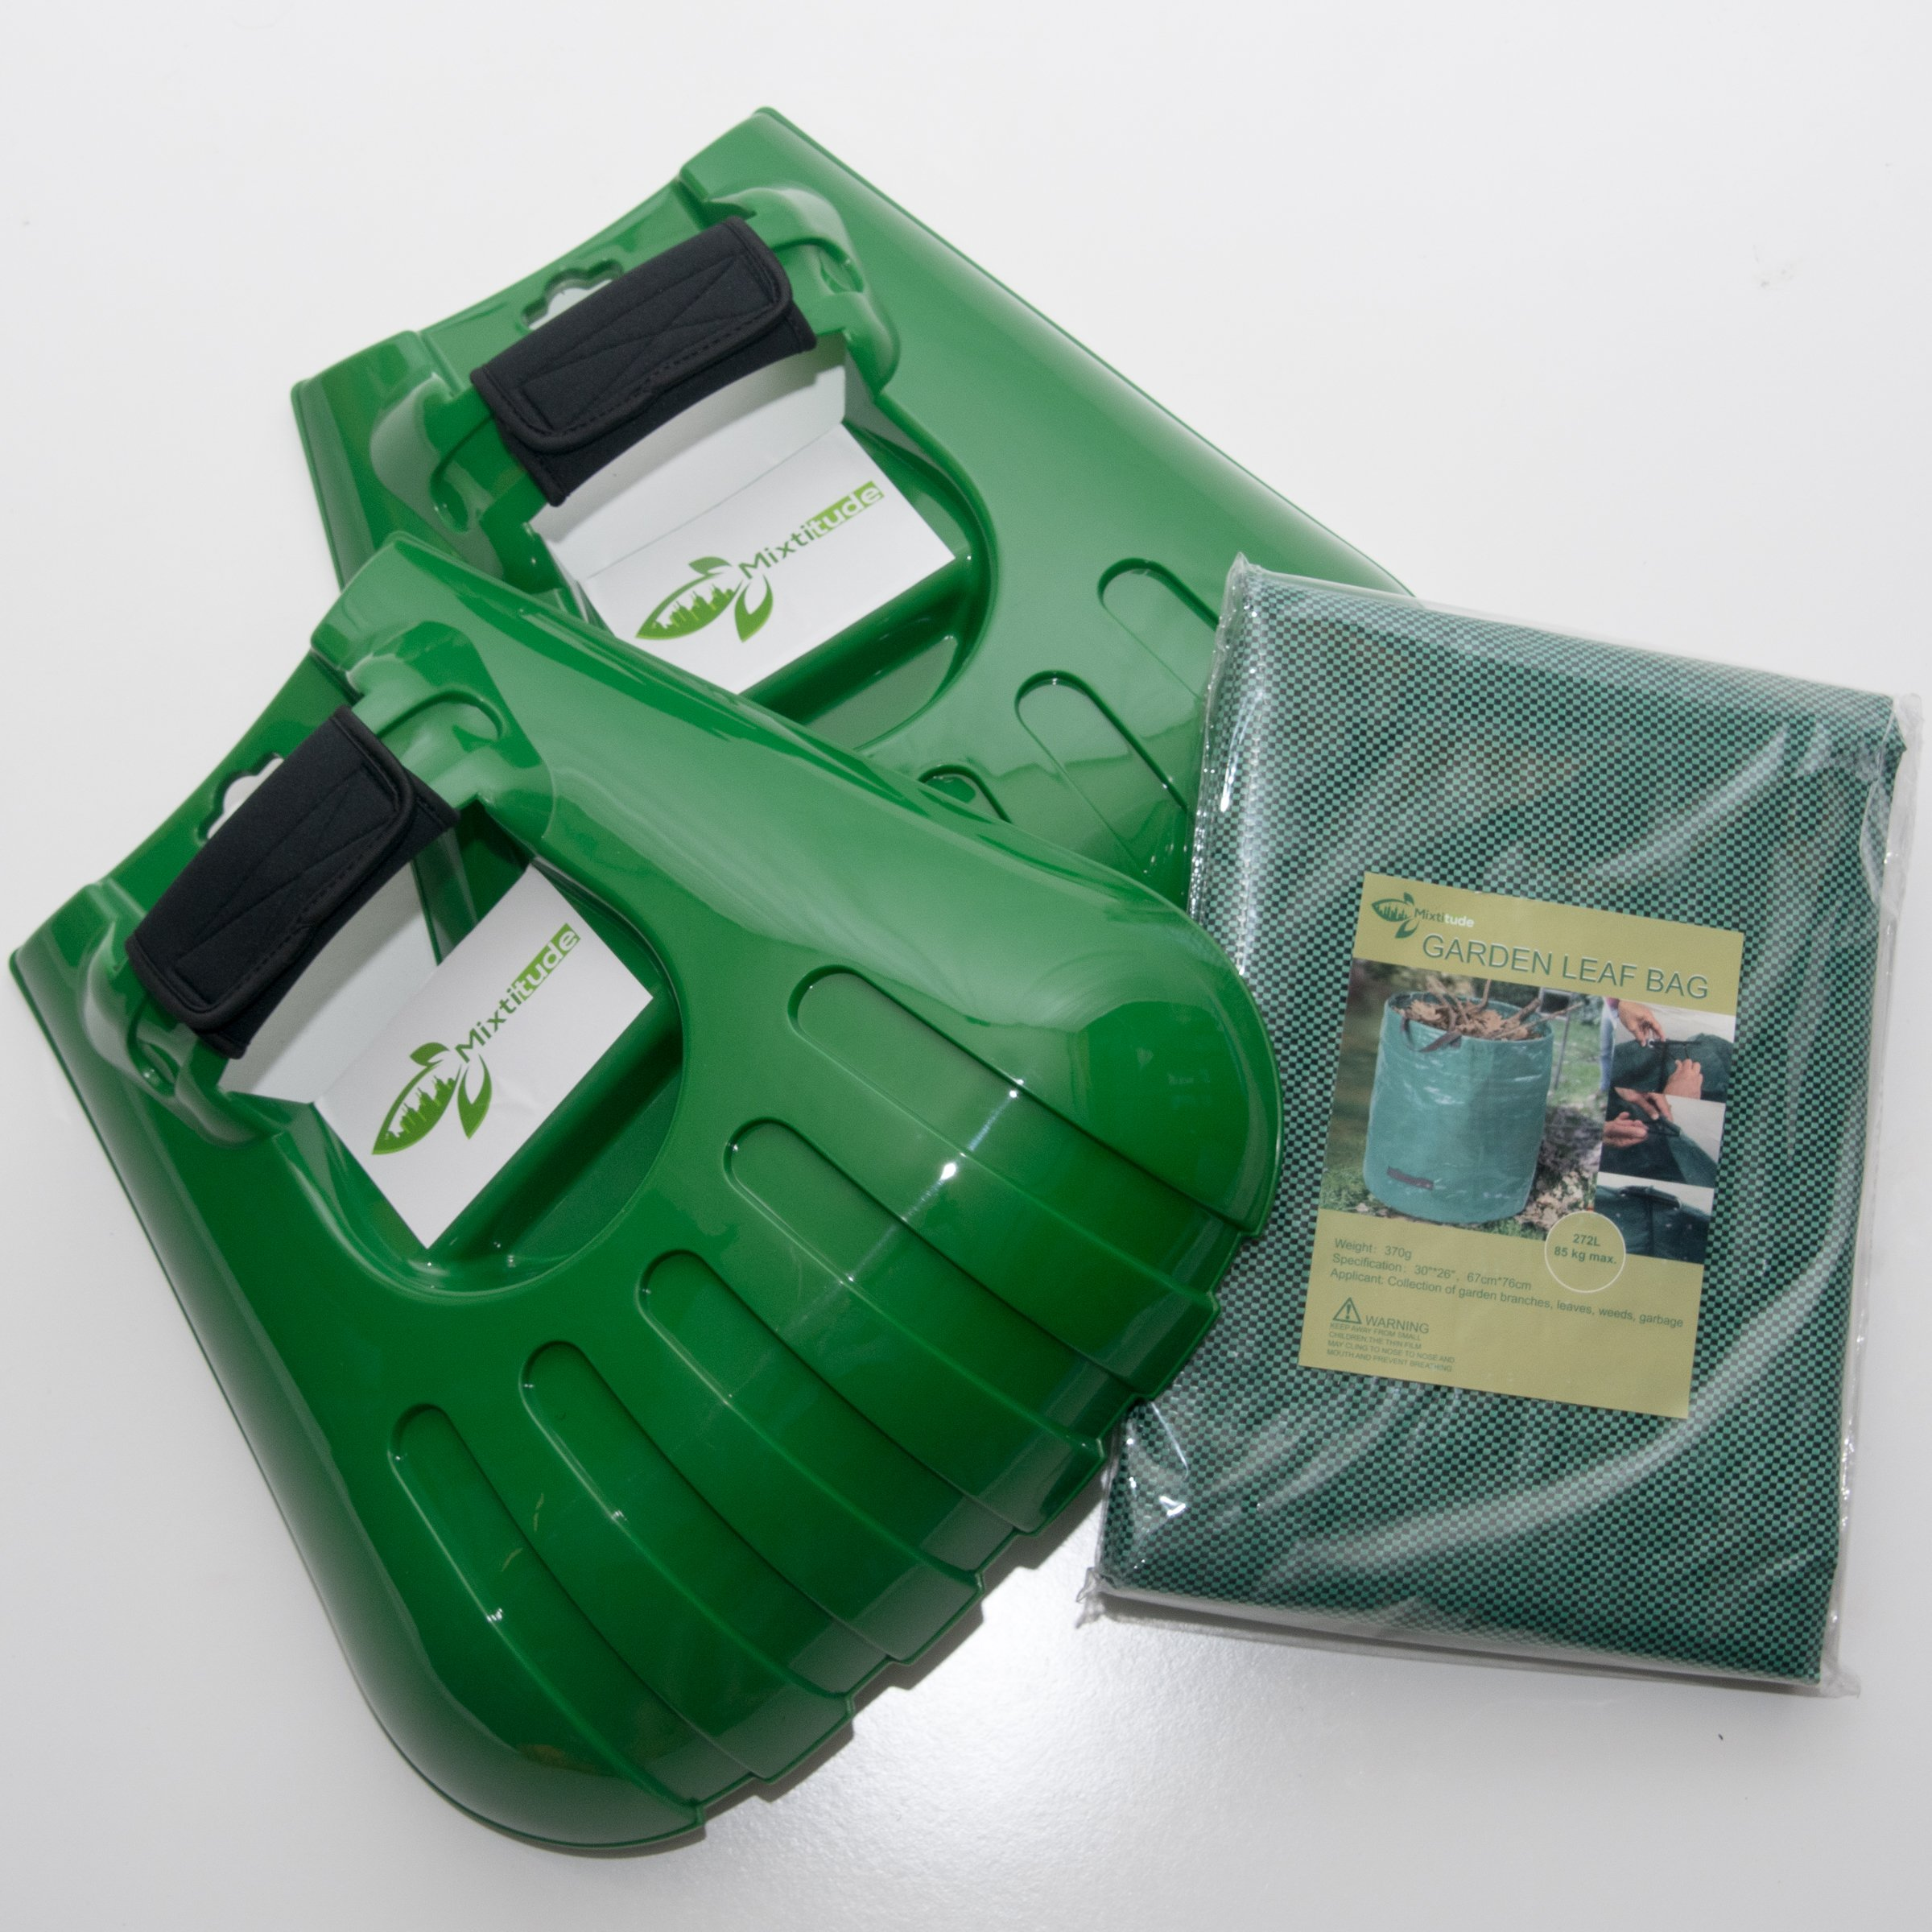 Mixitude Garden Hand Leaf Claw Scoops complete with Protective Wrist Pad and 72 Gallon Leaf Waste Bag by Mixtitude (Image #1)